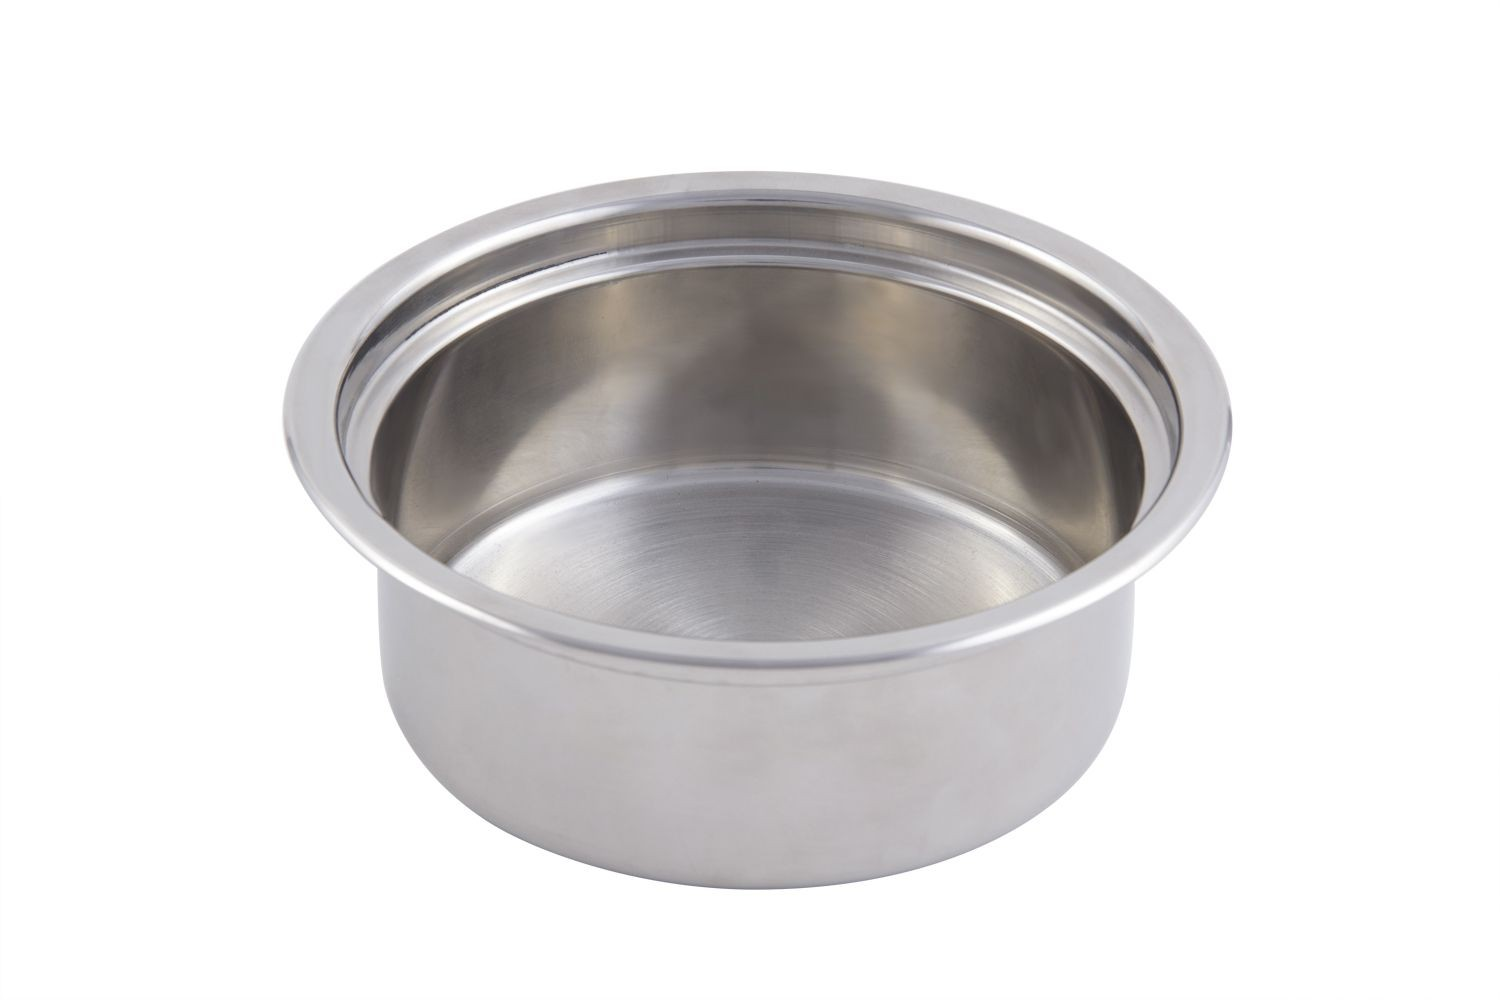 Bon Chef 60300i Insert Pan for Country French Pot, 1 Qt. 16 oz.